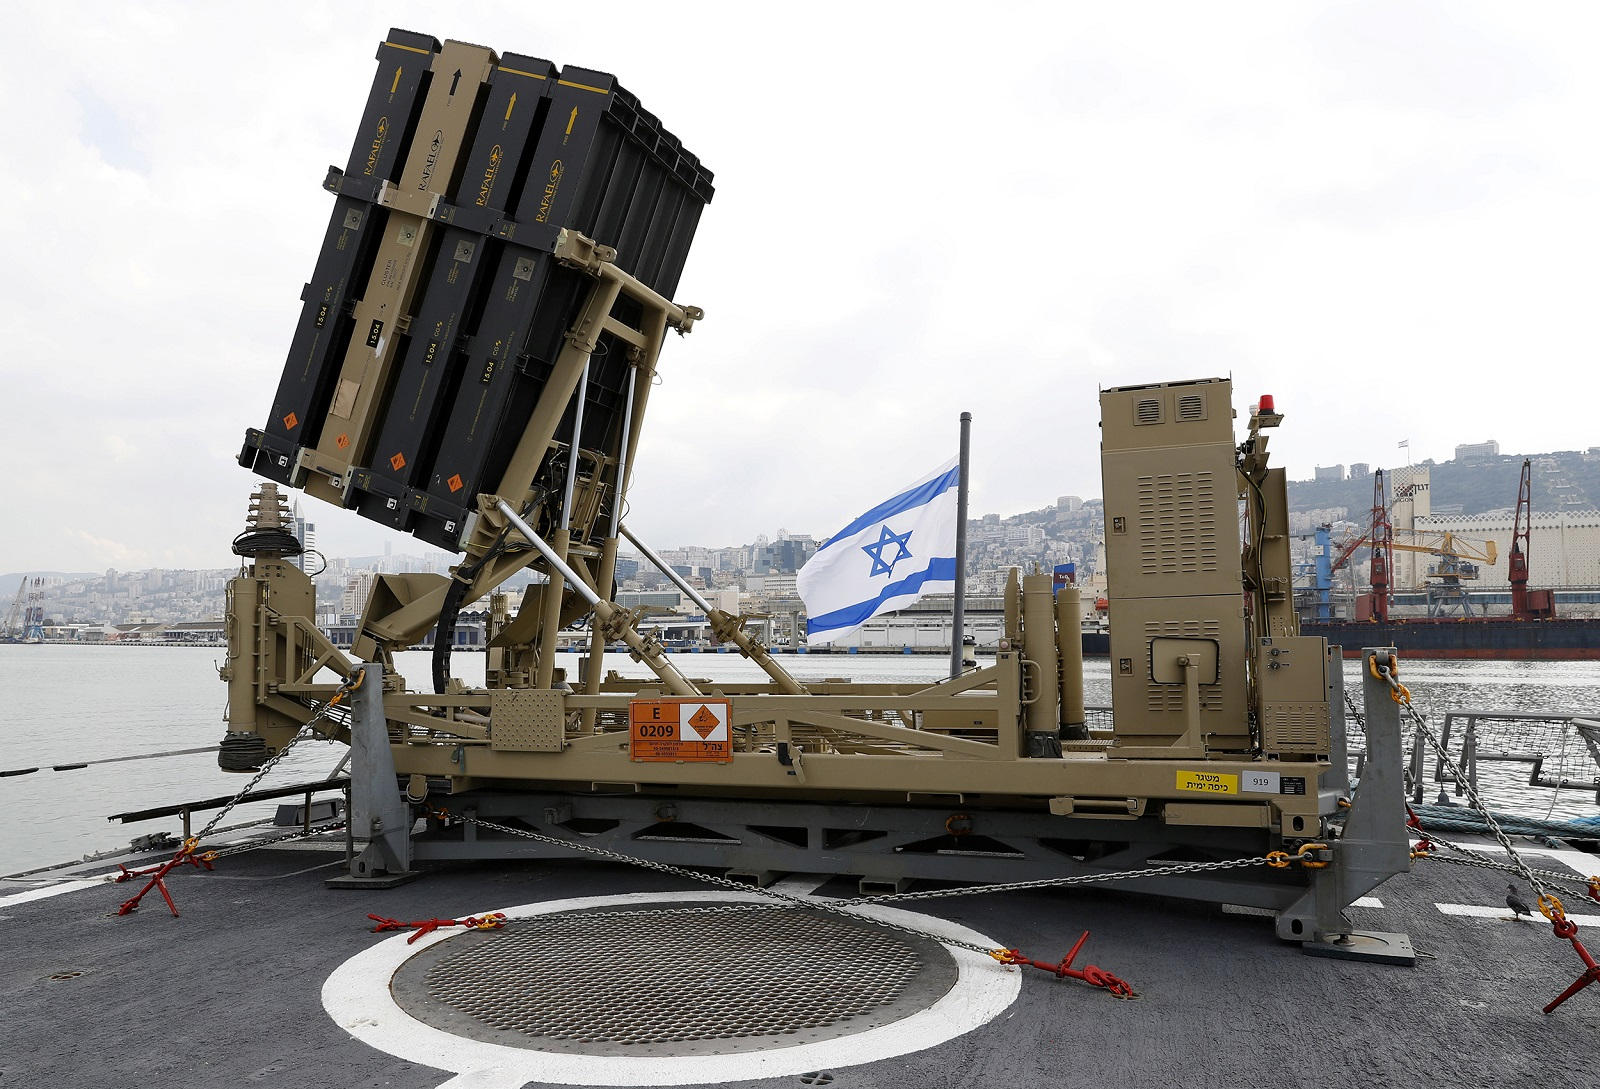 Israel's Iron Dome Headache (As In China Might Have Stolen the Specs On It)